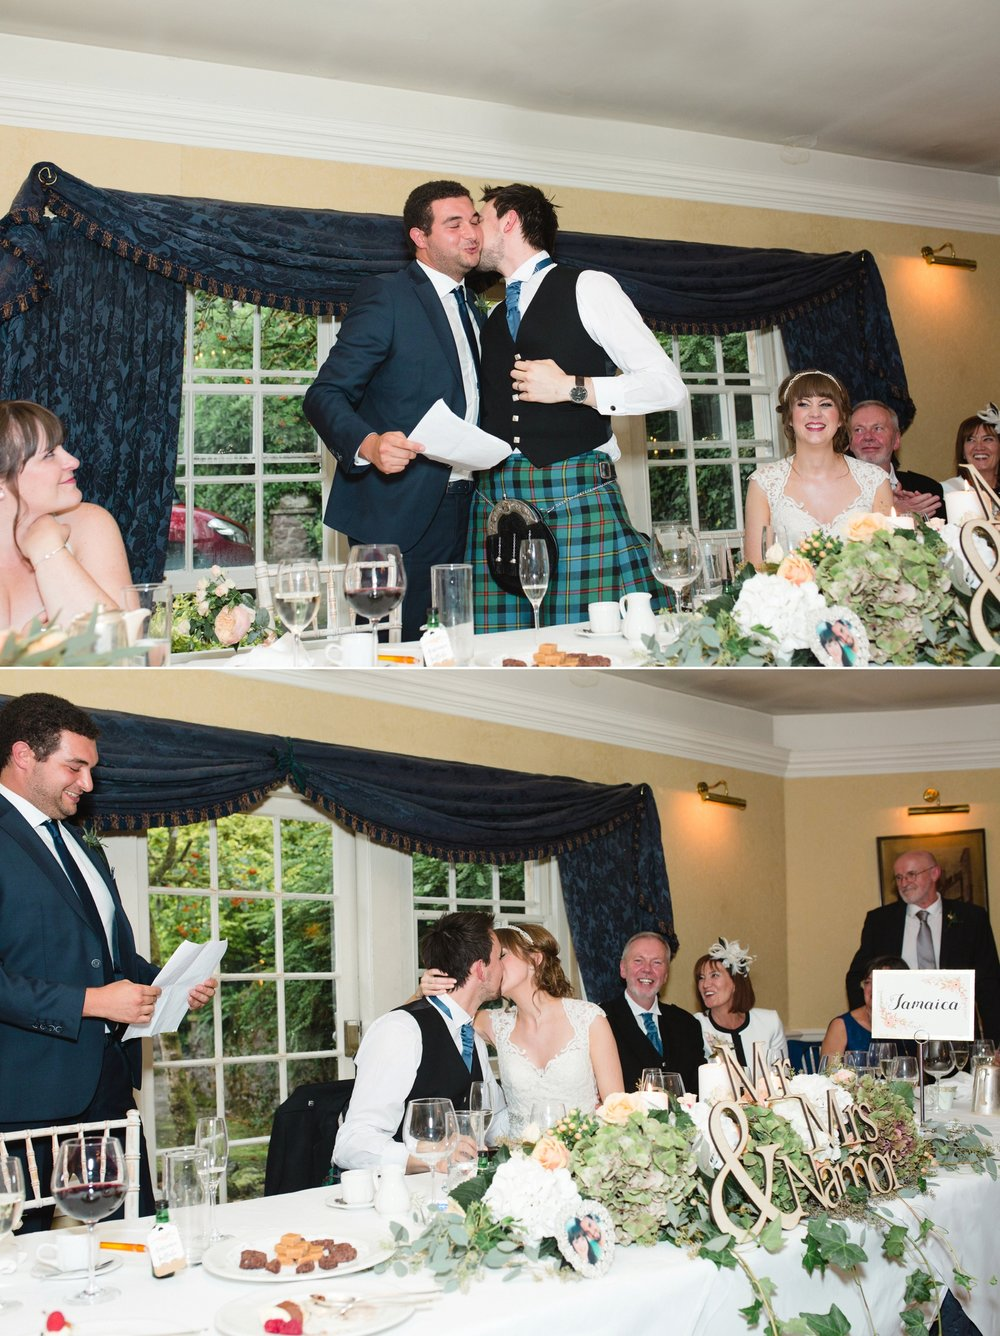 ScottishItalianRomanCampWedding44-32.jpg